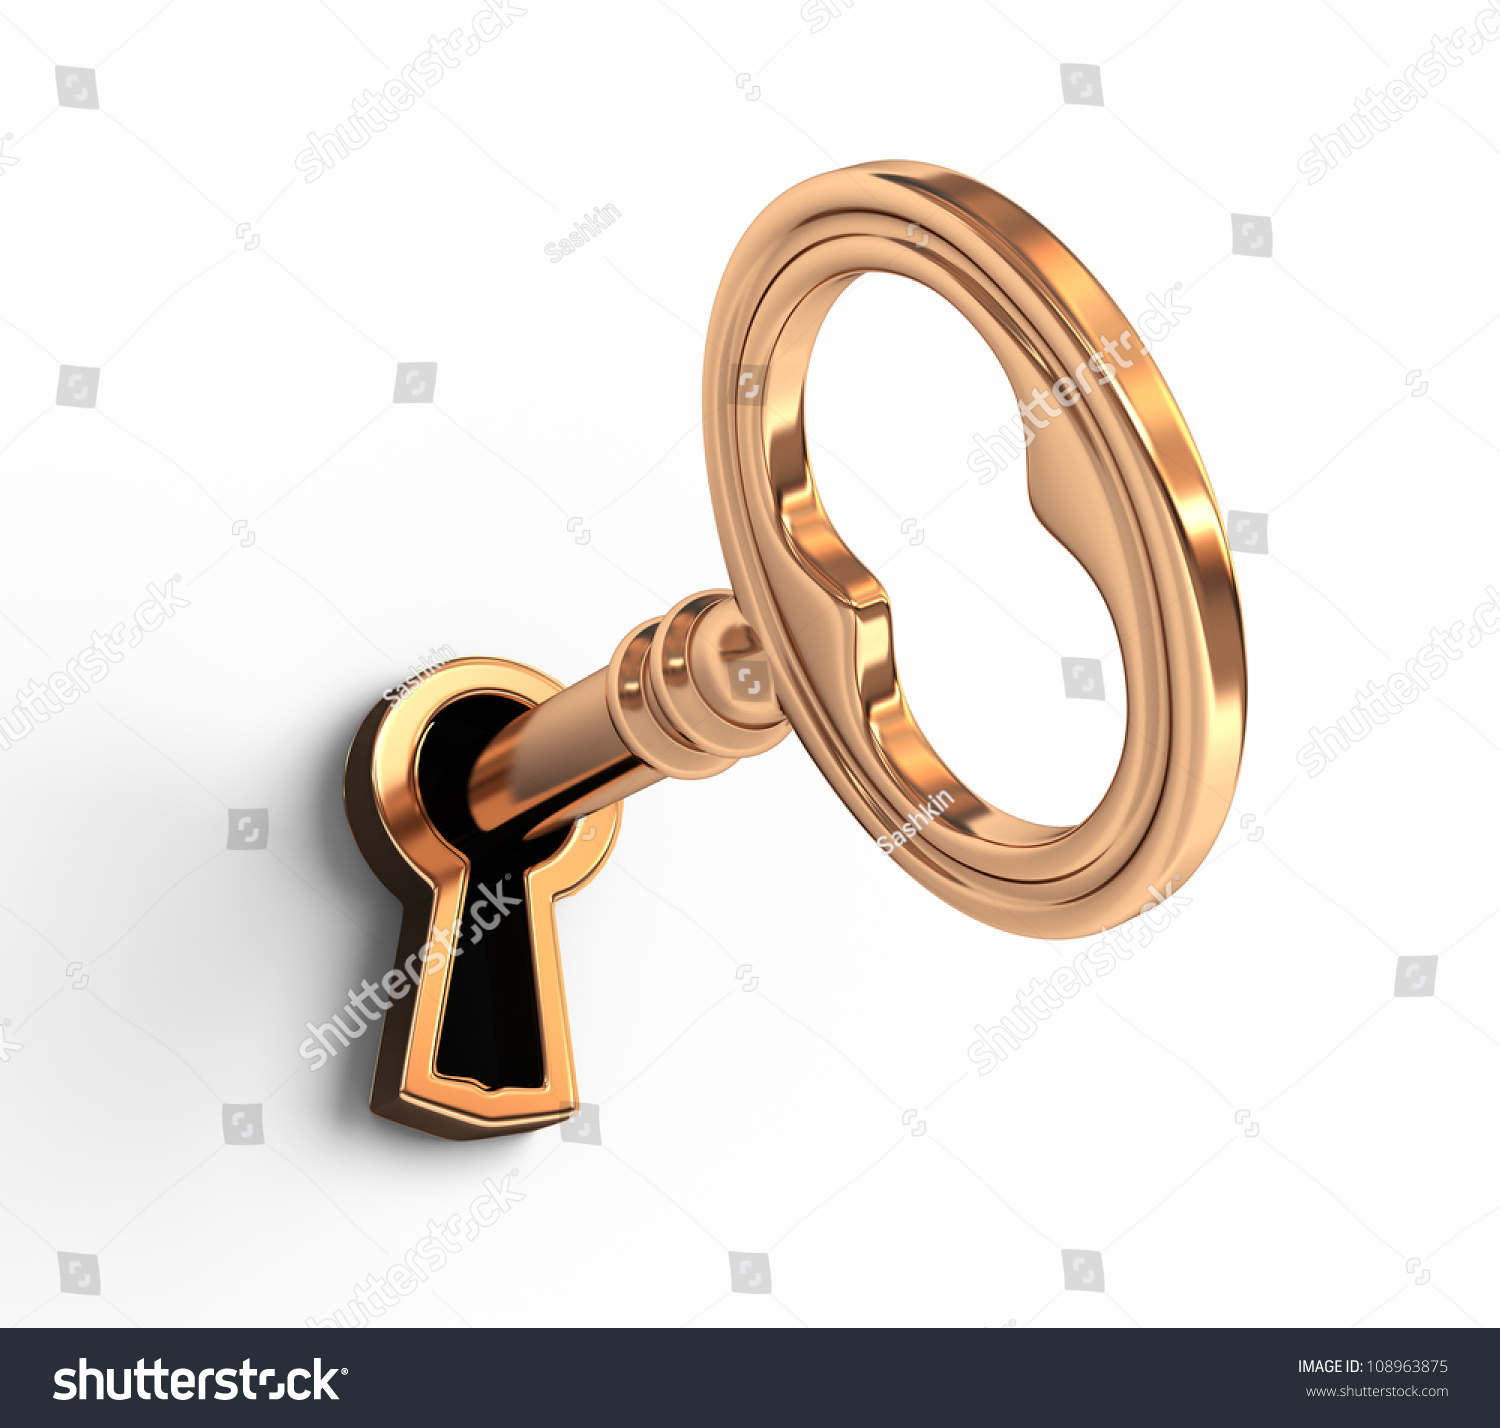 With golden key 3d rendering plan concept with golden key 3d rendering - Golden Key In Keyhole